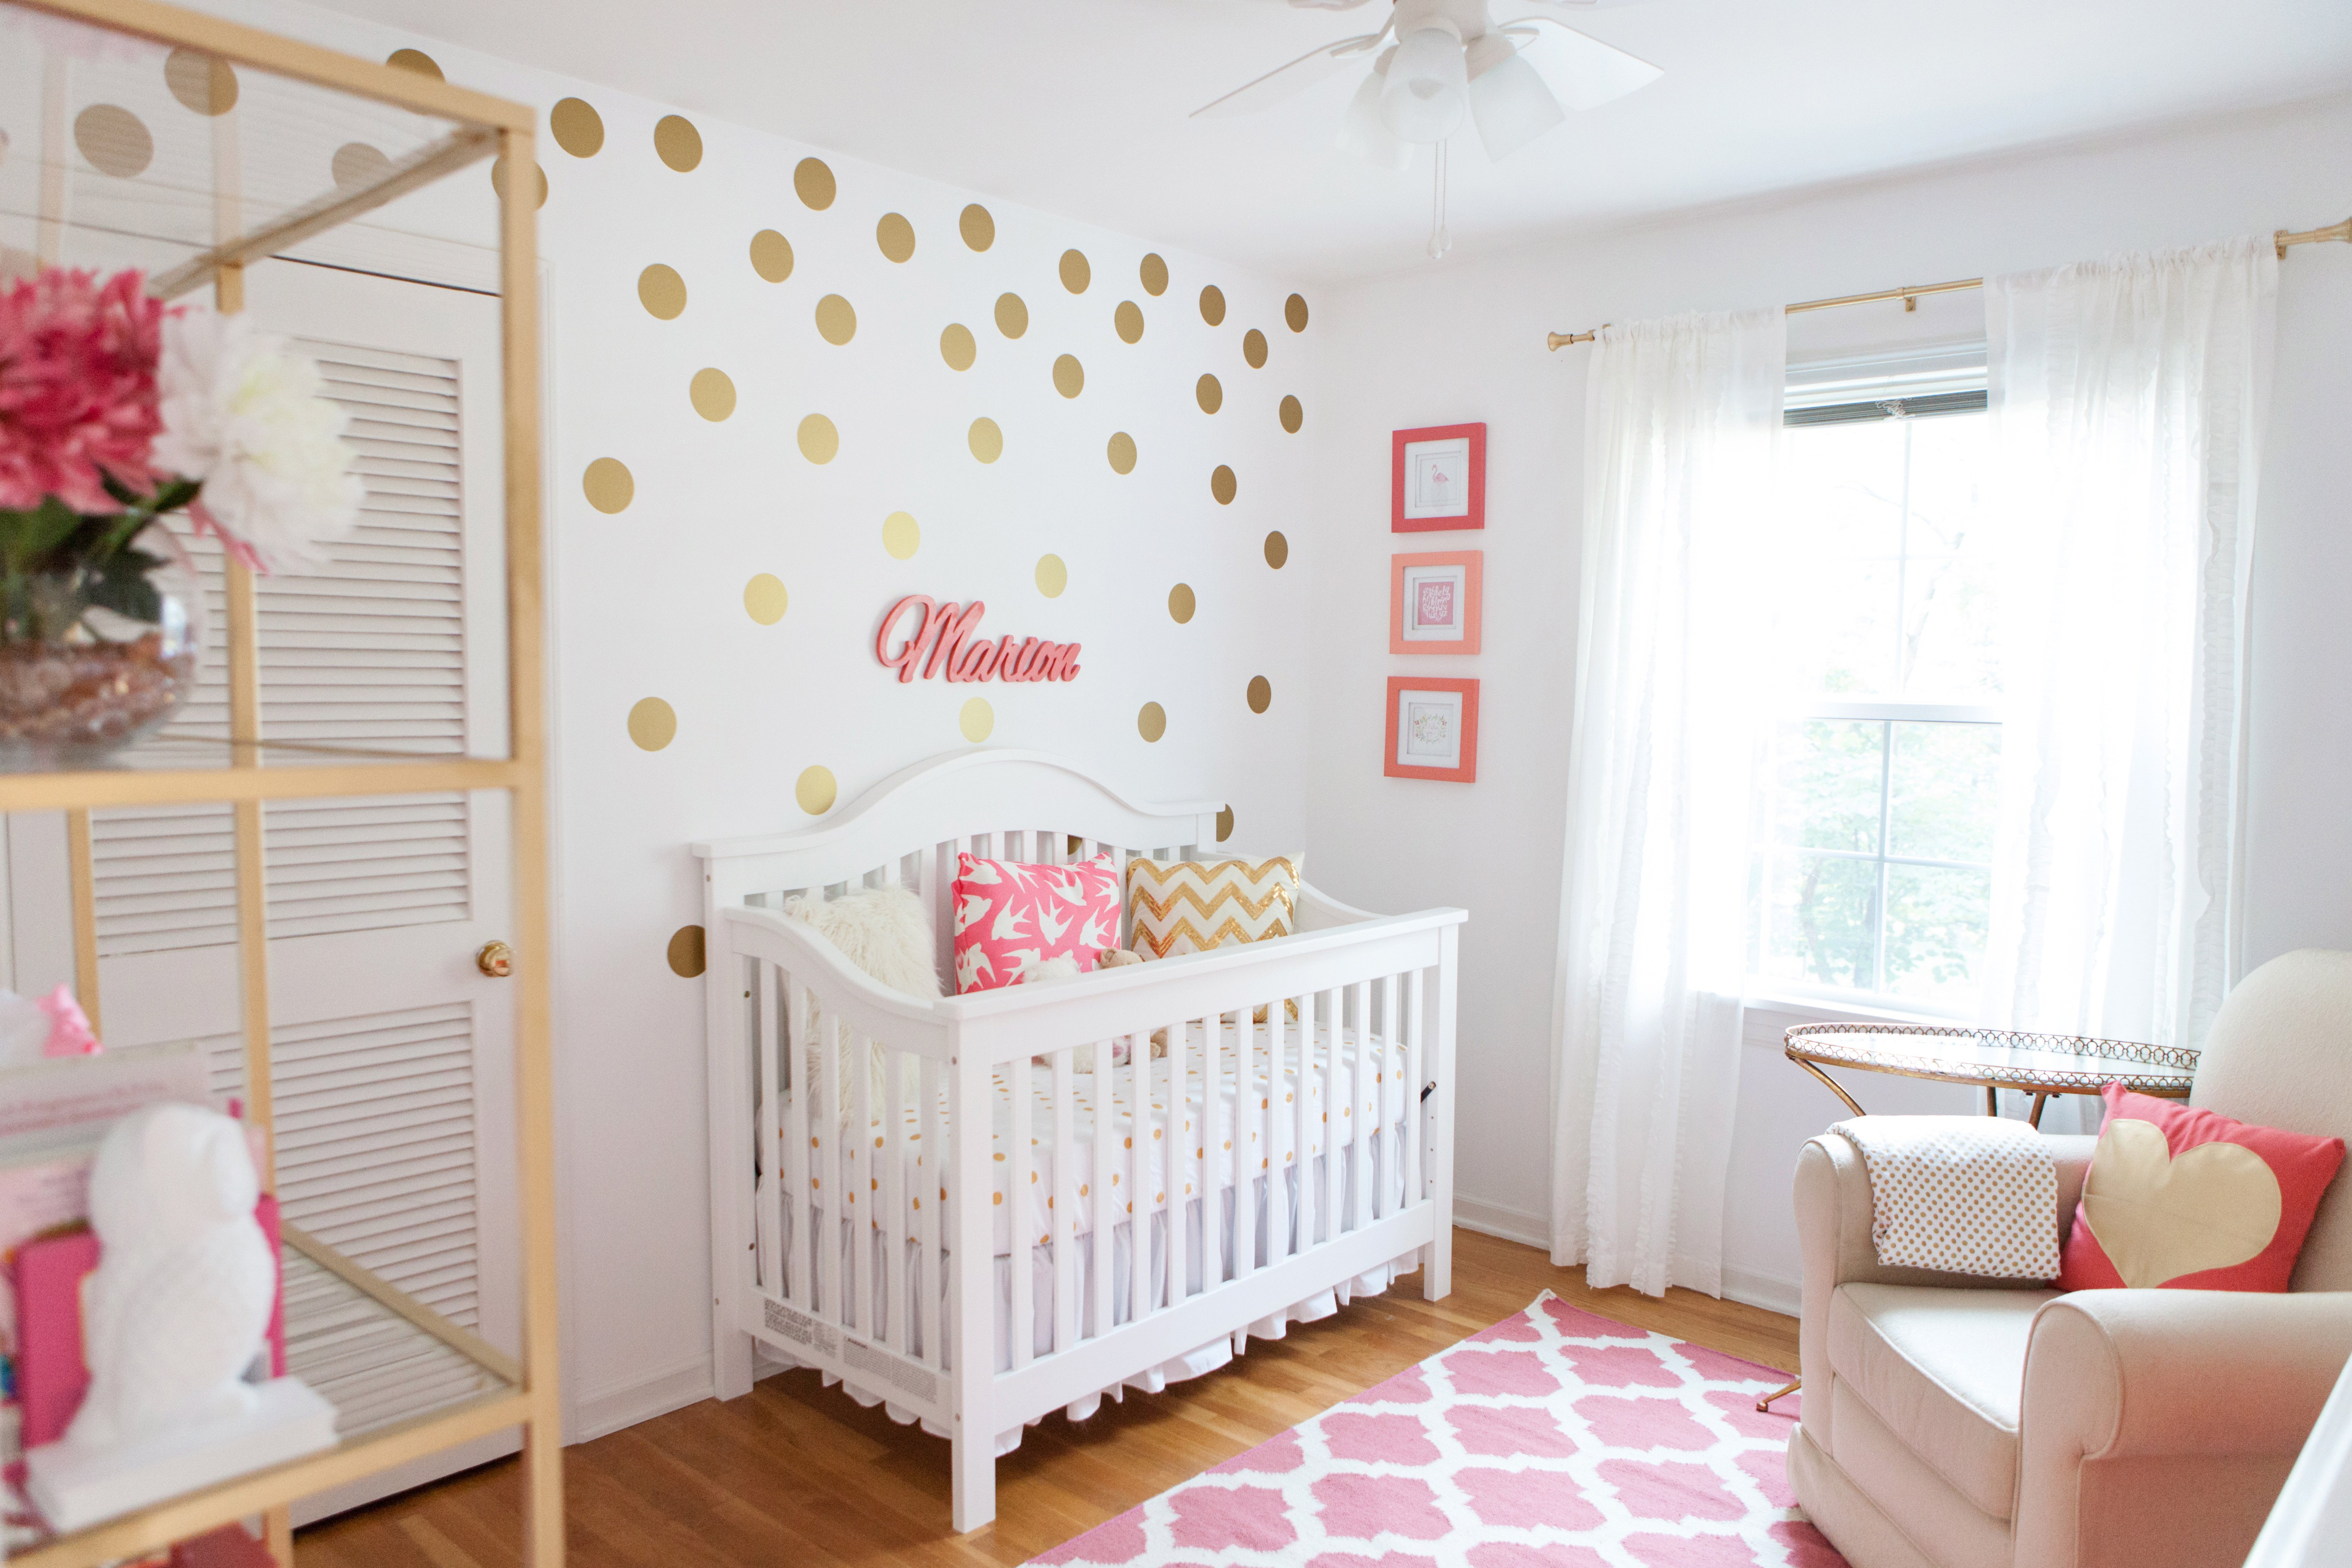 Toddler Girls Room Decor Ideas Elegant Marion S Coral and Gold Polka Dot Nursery Project Nursery